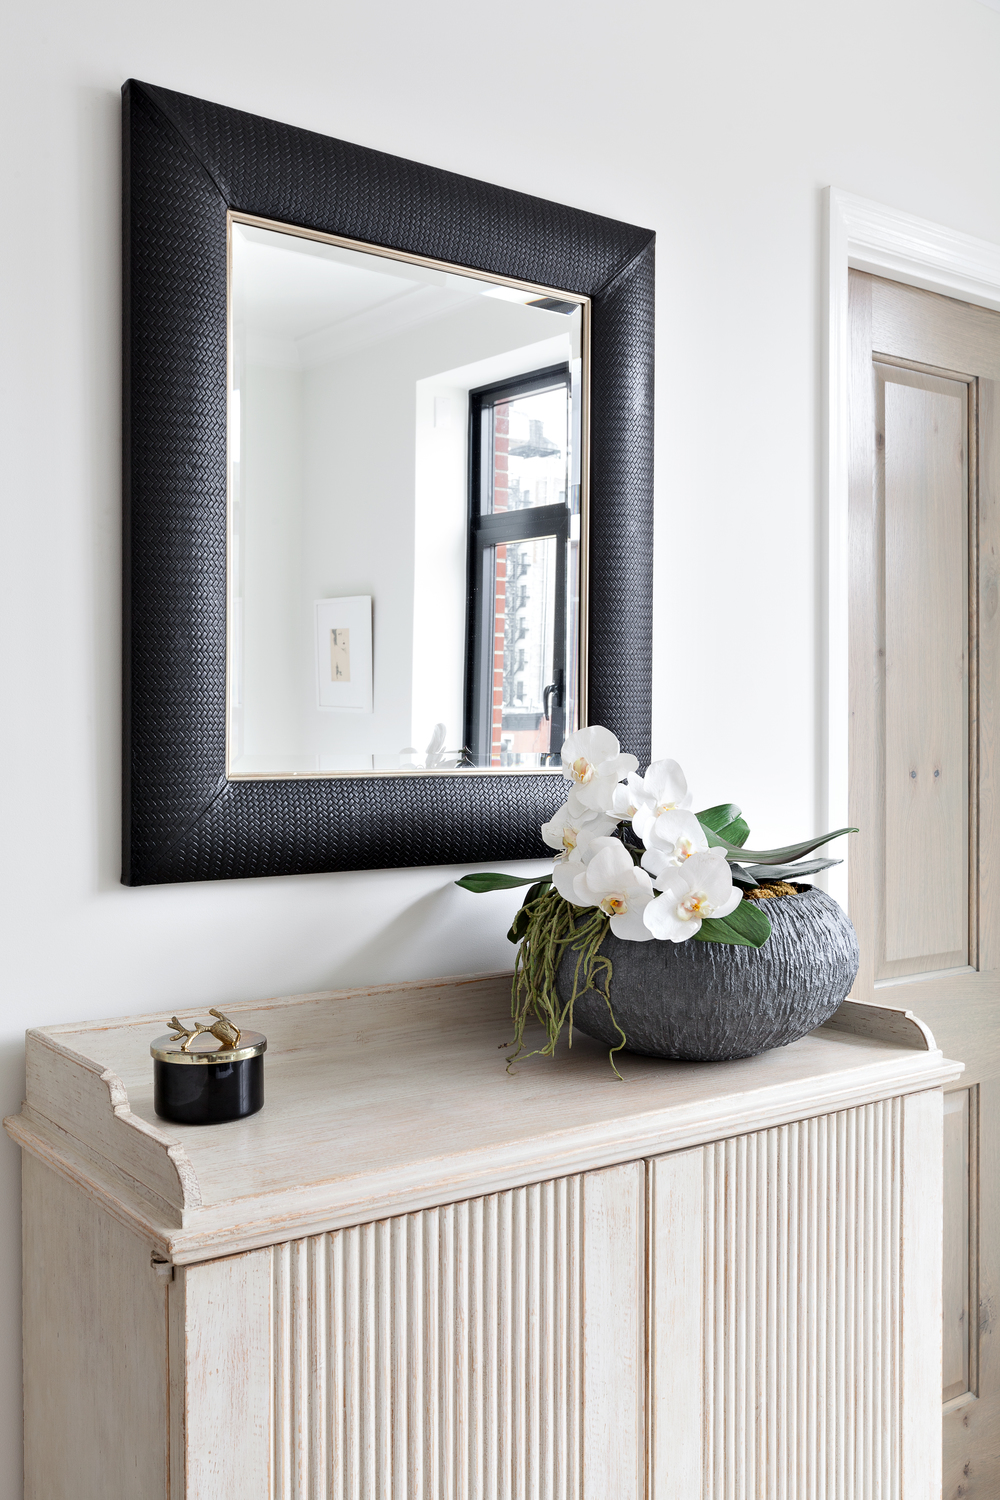 Art deco nero weave leather framed mirror klasp home by kim alessi art deco nero weave leather framed mirror amipublicfo Gallery